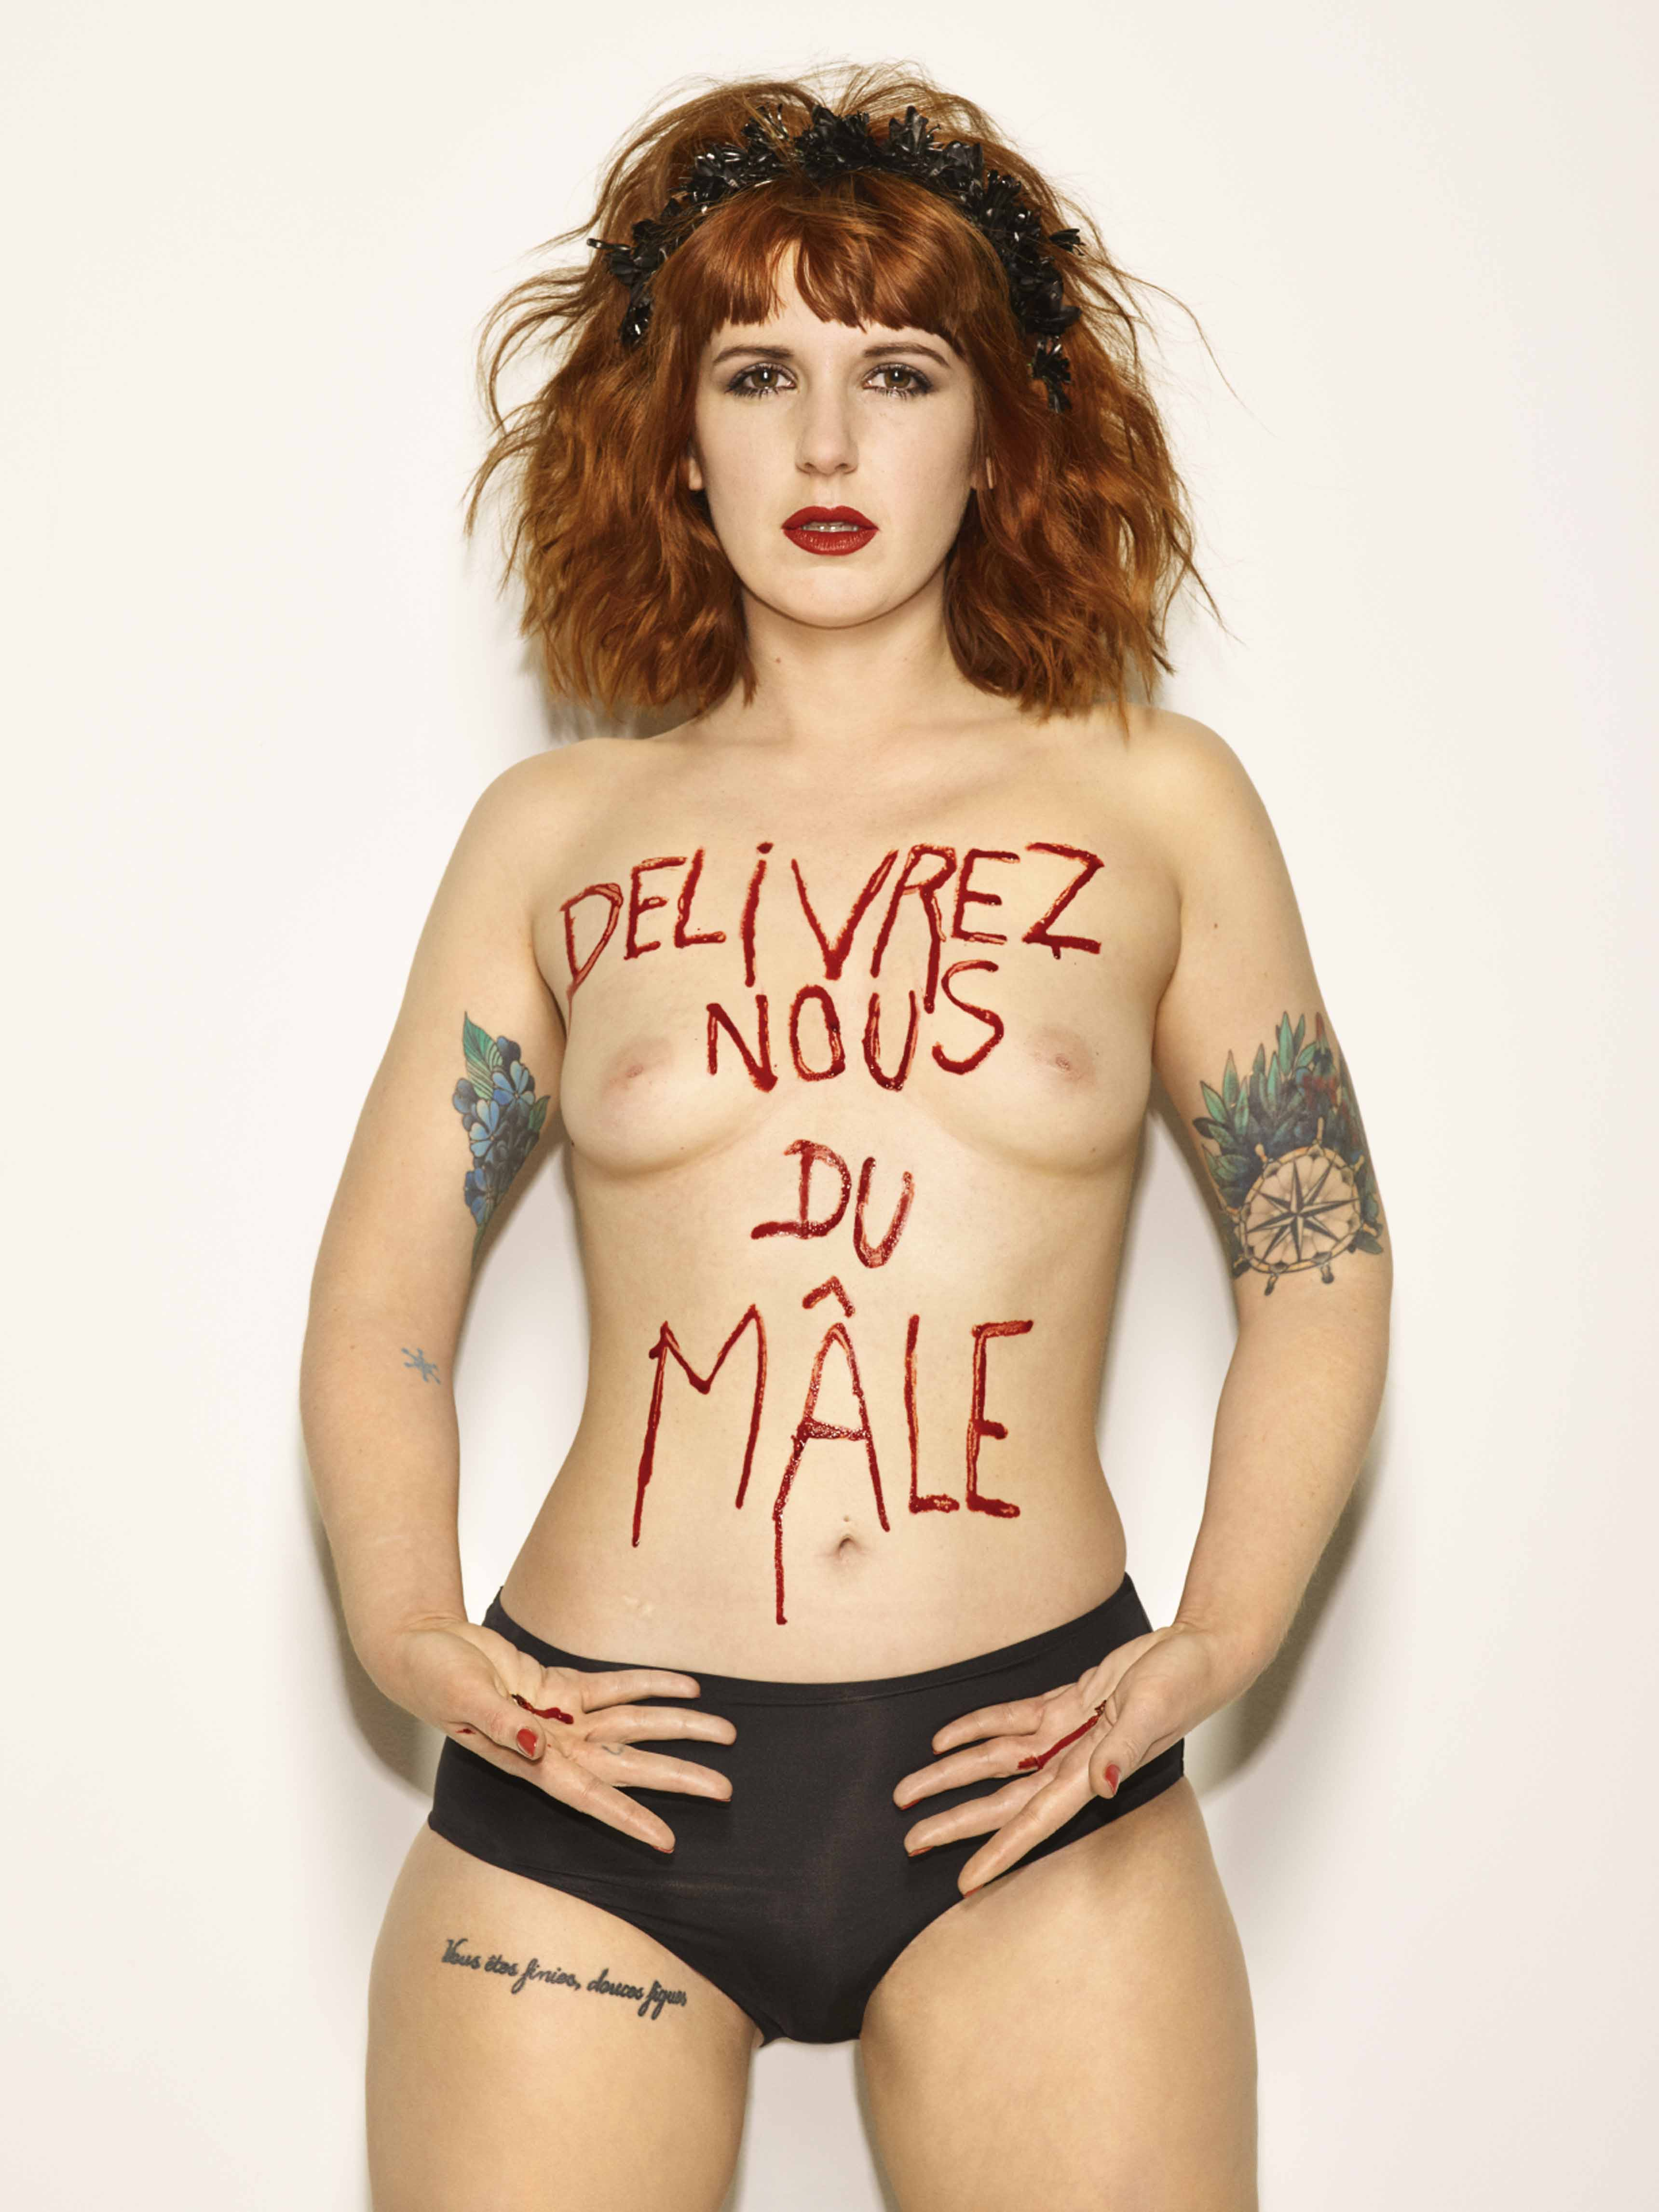 Bettina Rheims, Sarah Constantin, Délivrez nous du Mâle, mai 2017, Paris © Bettina Rheims courtesy Galerie Xippas